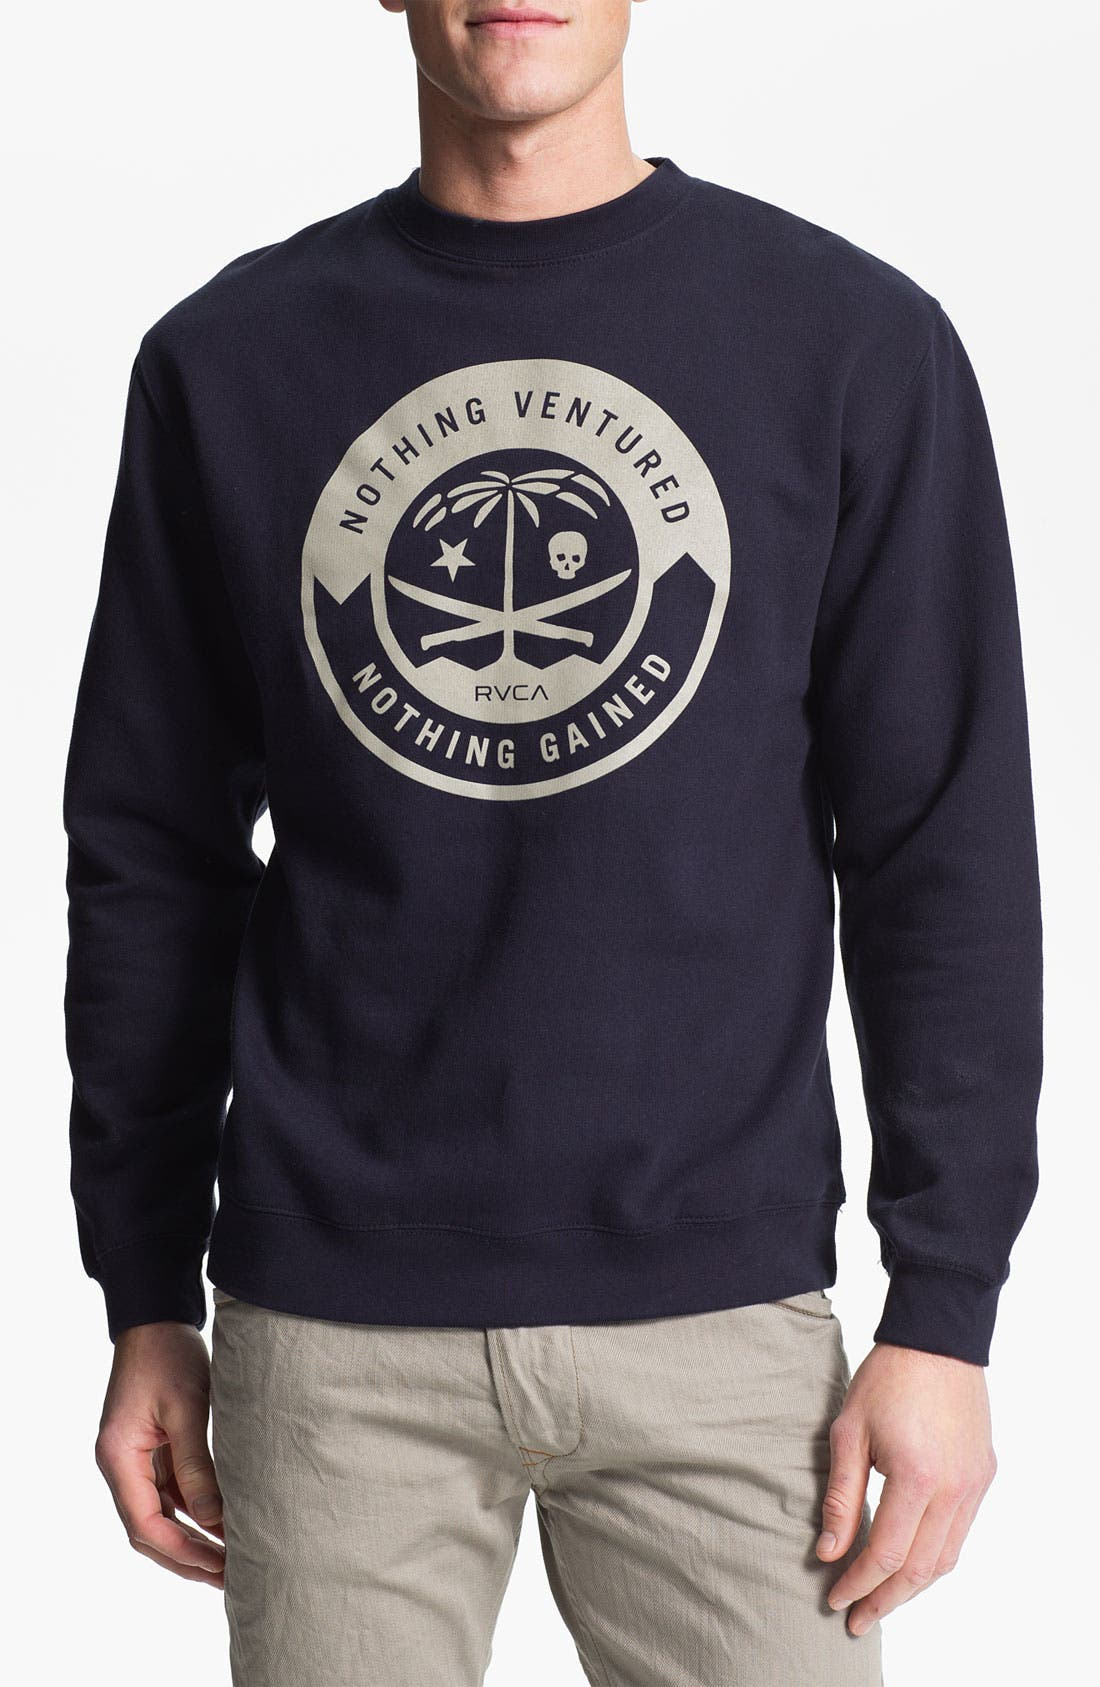 Alternate Image 1 Selected - RVCA 'Korps' Graphic Crewneck Sweatshirt